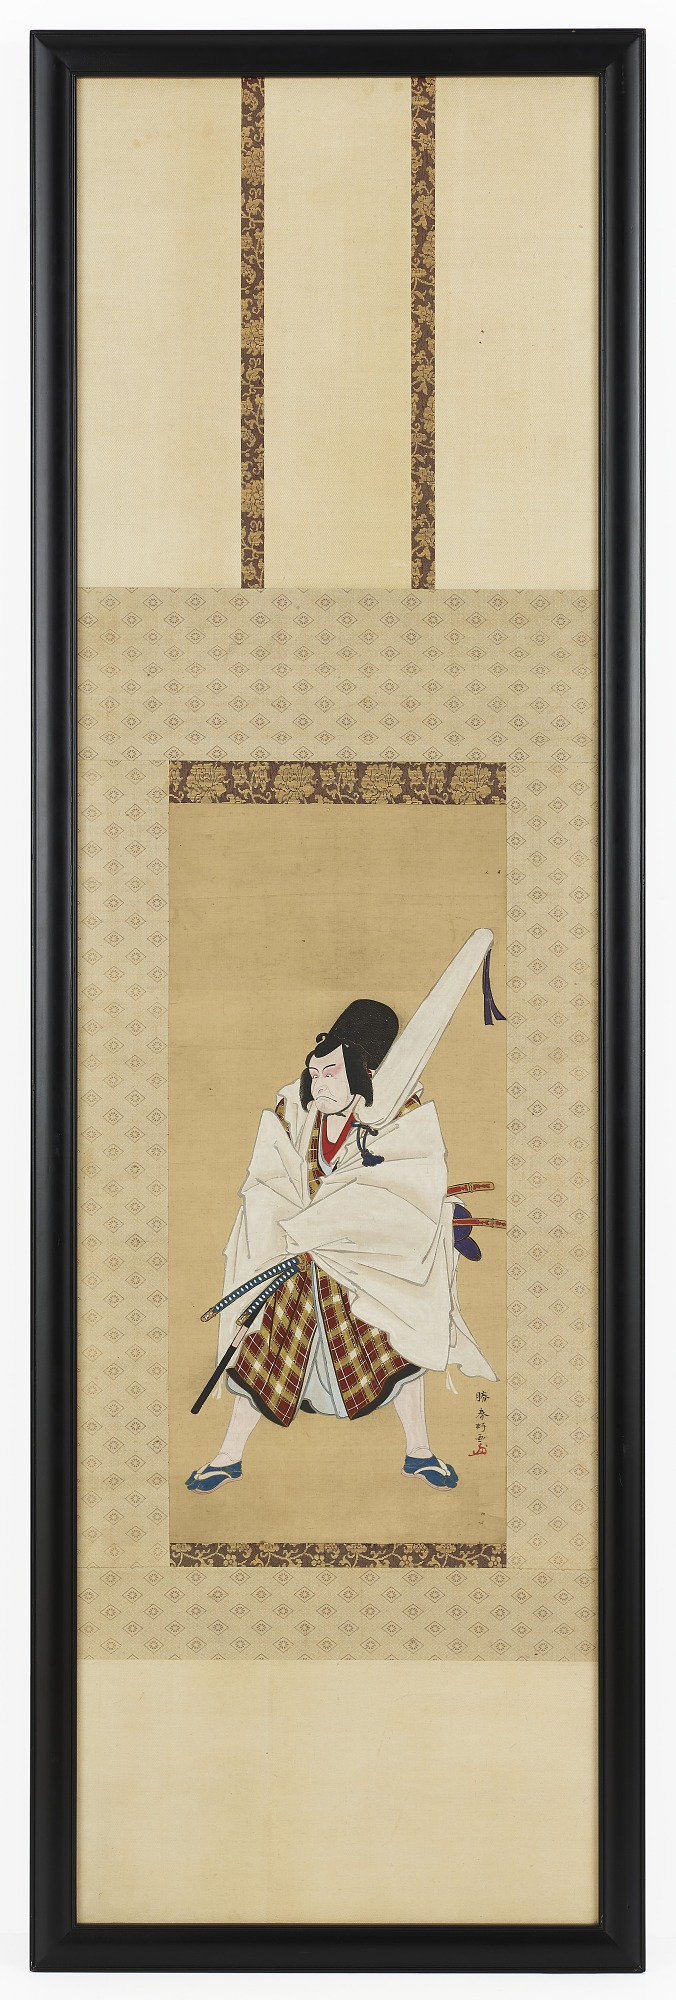 The Actor Ichikawa Ebizo III as Matsuomaru in the play Sugawara and the Secrets of Calligraphy